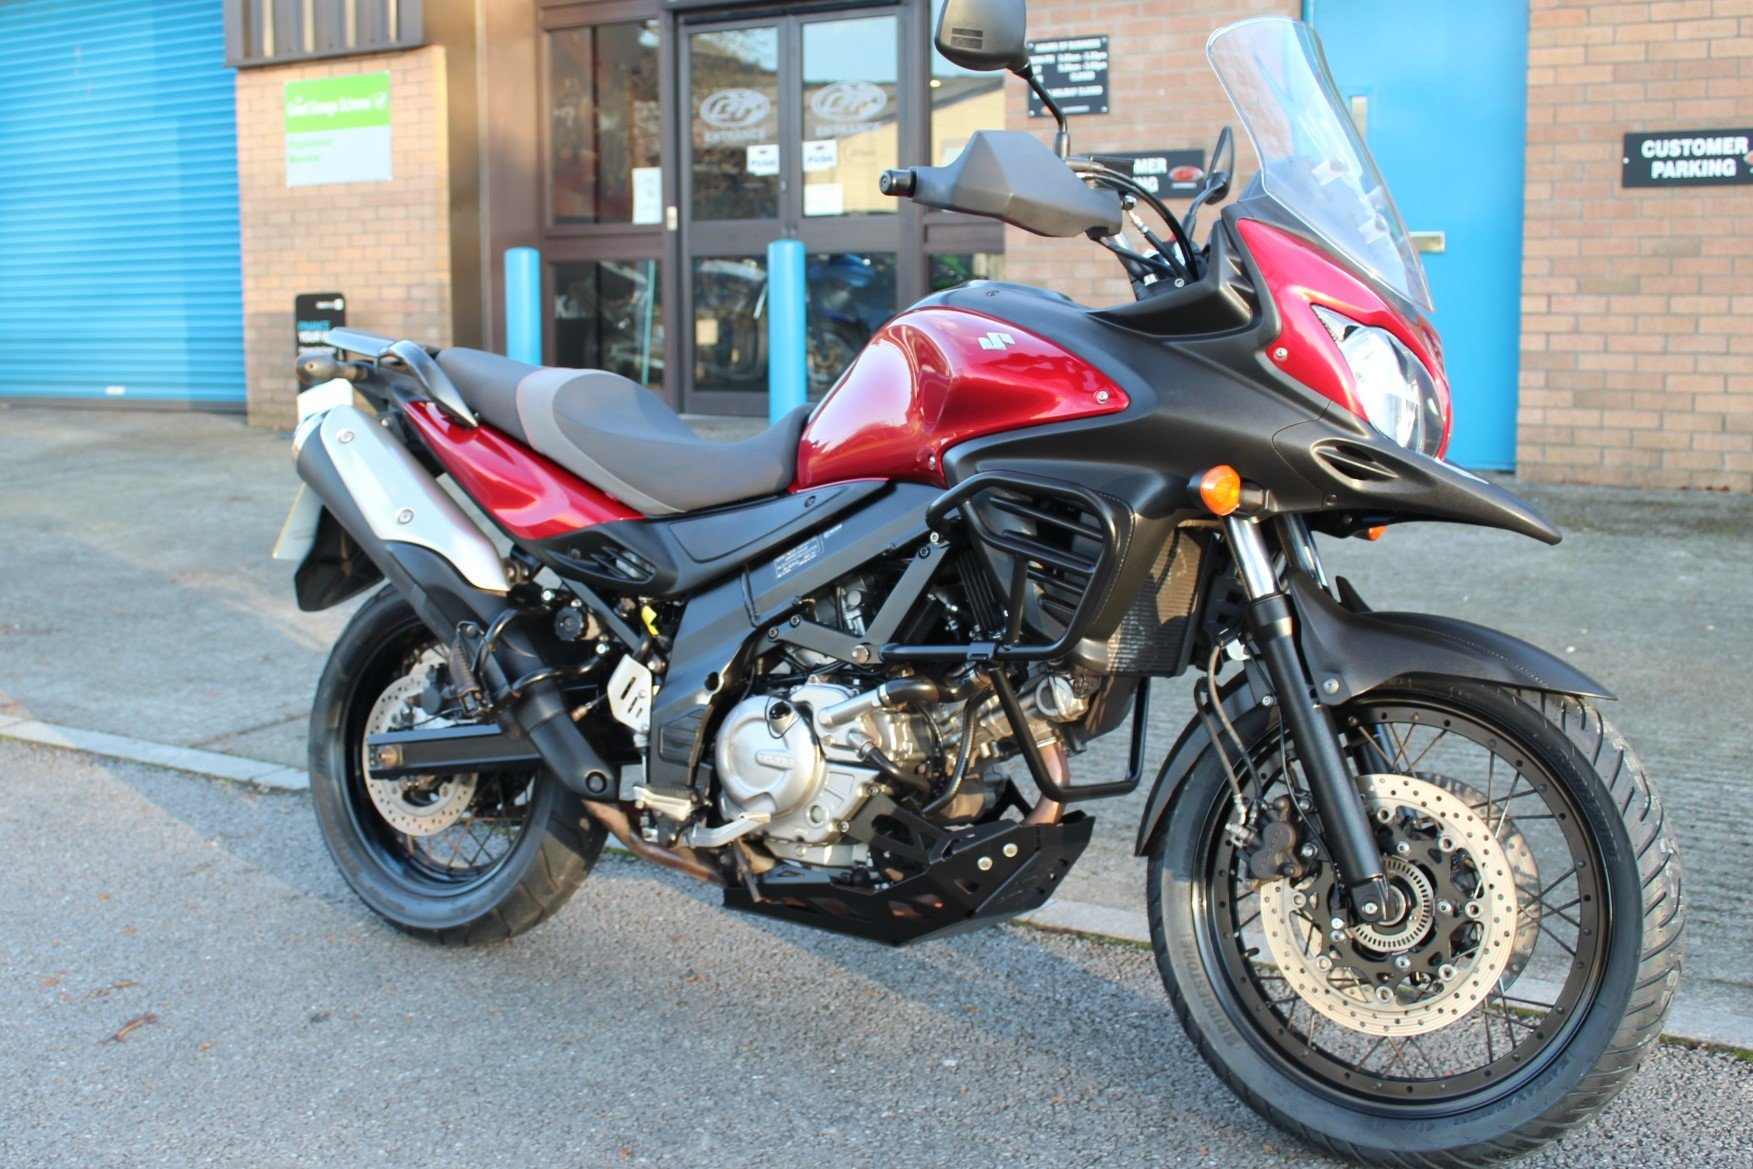 2016 16 Suzuki DL650 AL6 V-Strom Adventure For Sale (picture 2 of 6)